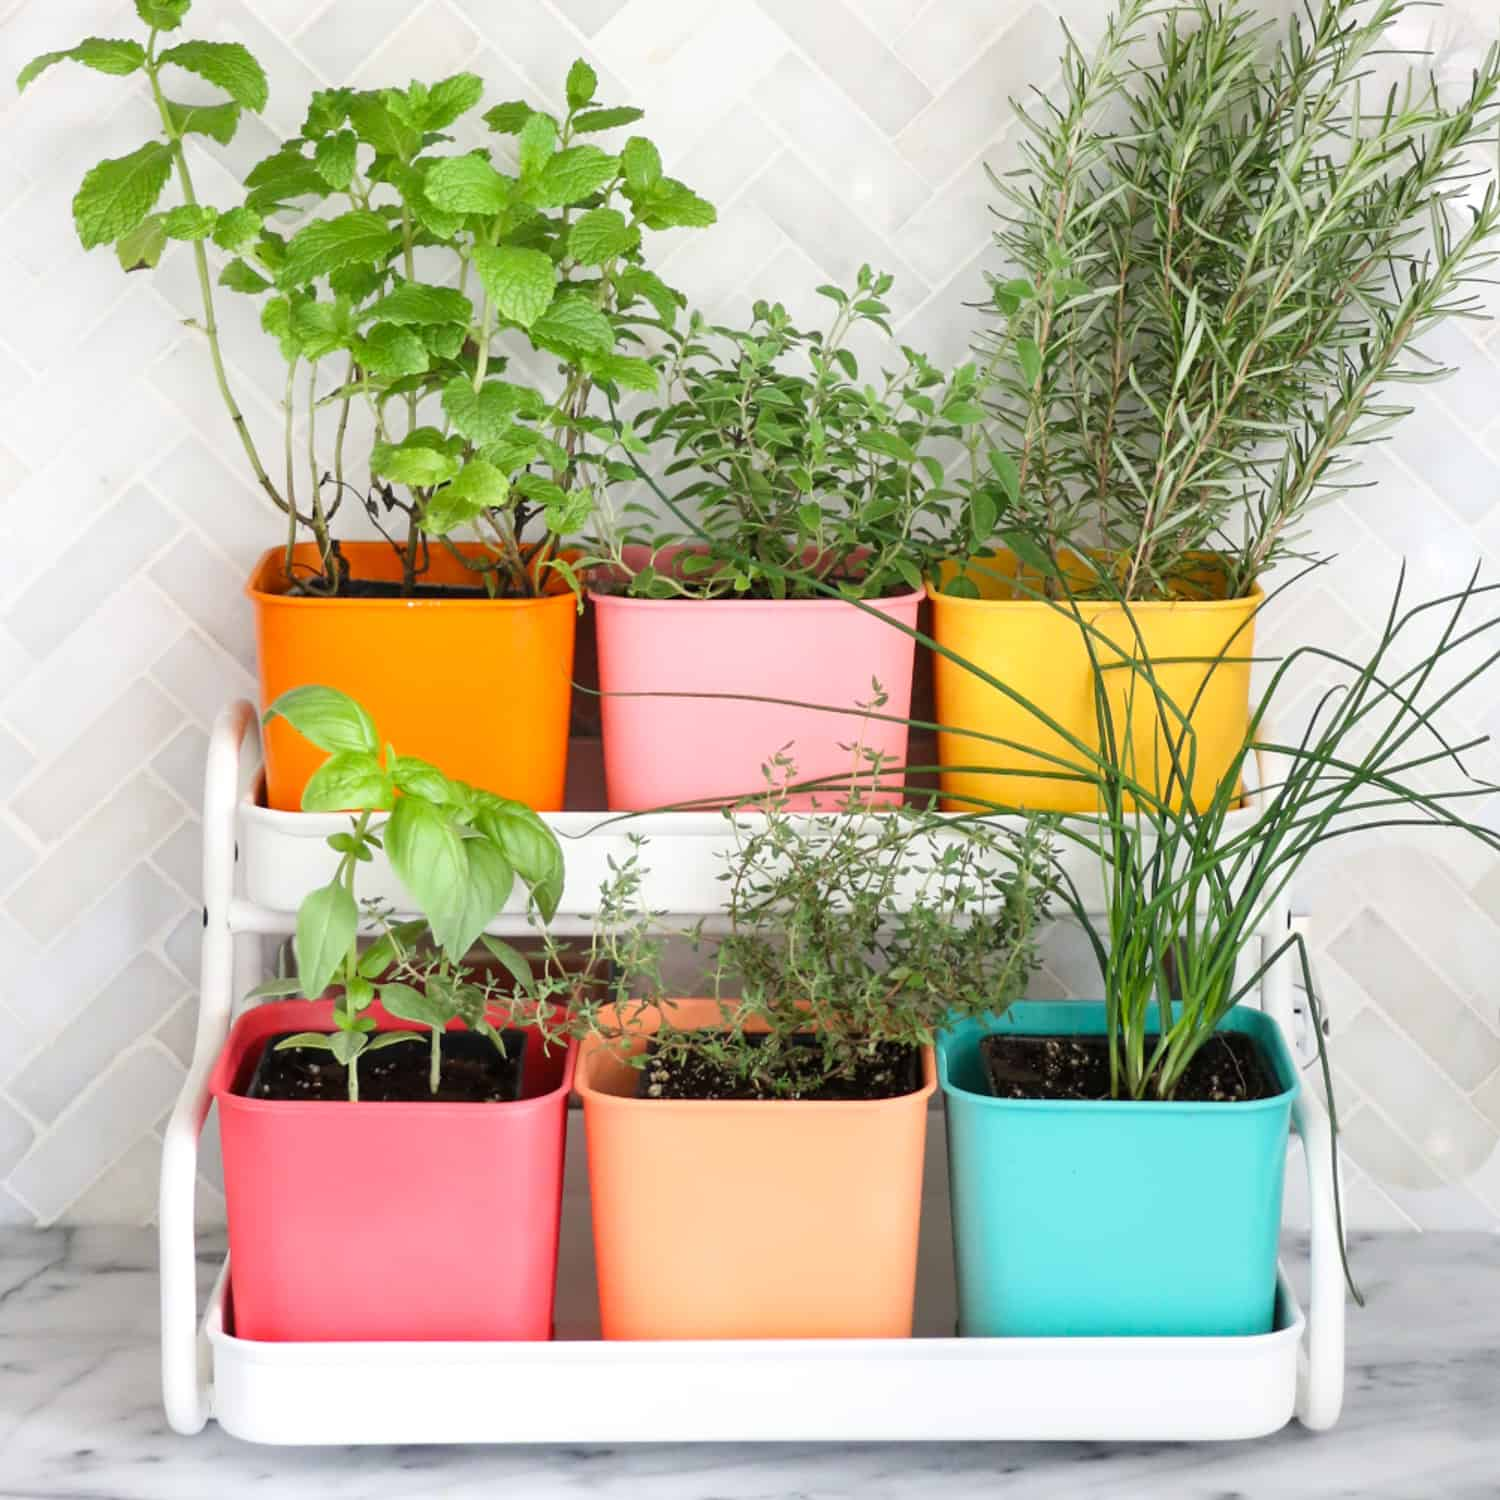 Make a Colorful Indoor Herb Garden